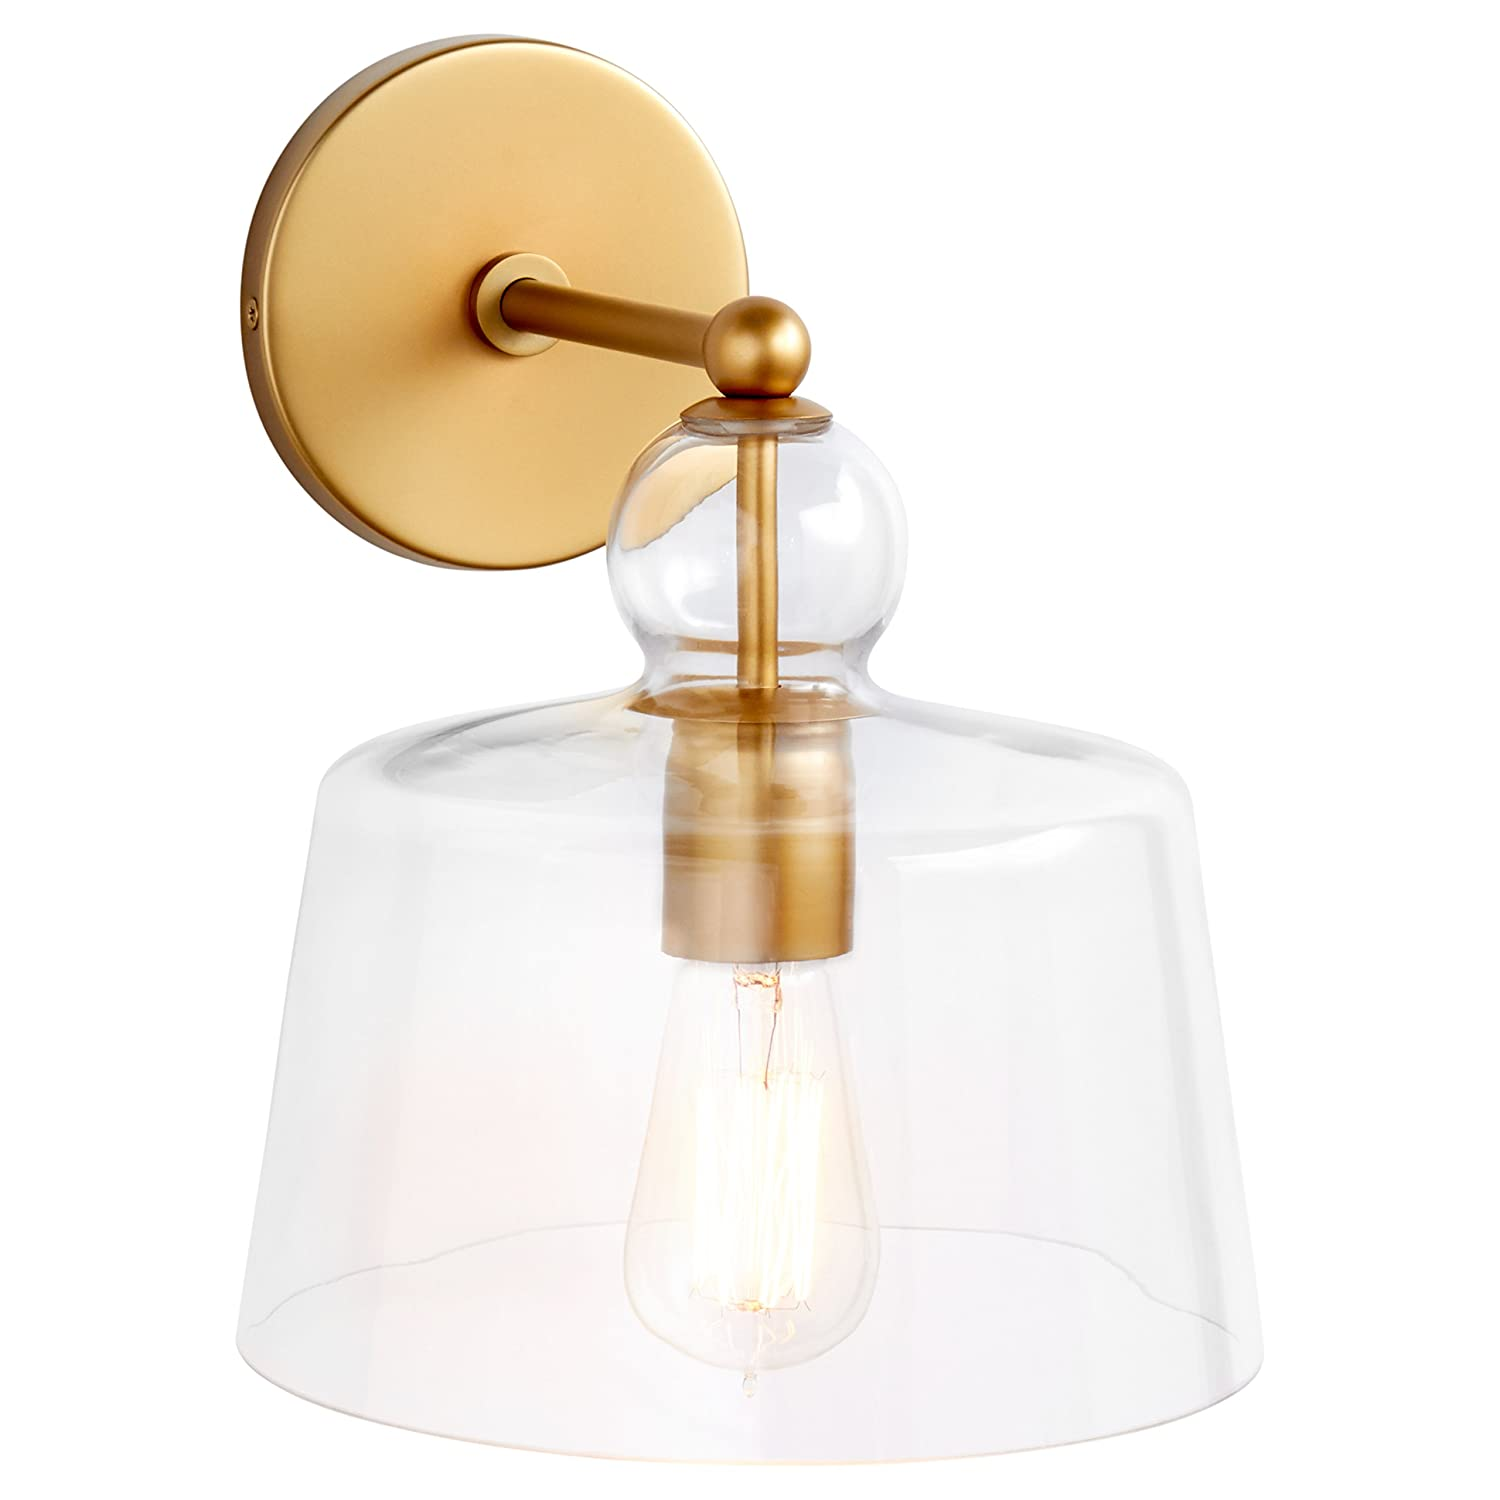 Stone beam modern metal wall mount sconce fixture with light bulb and glass shade 16 x 8 x 10 inches brushed brass